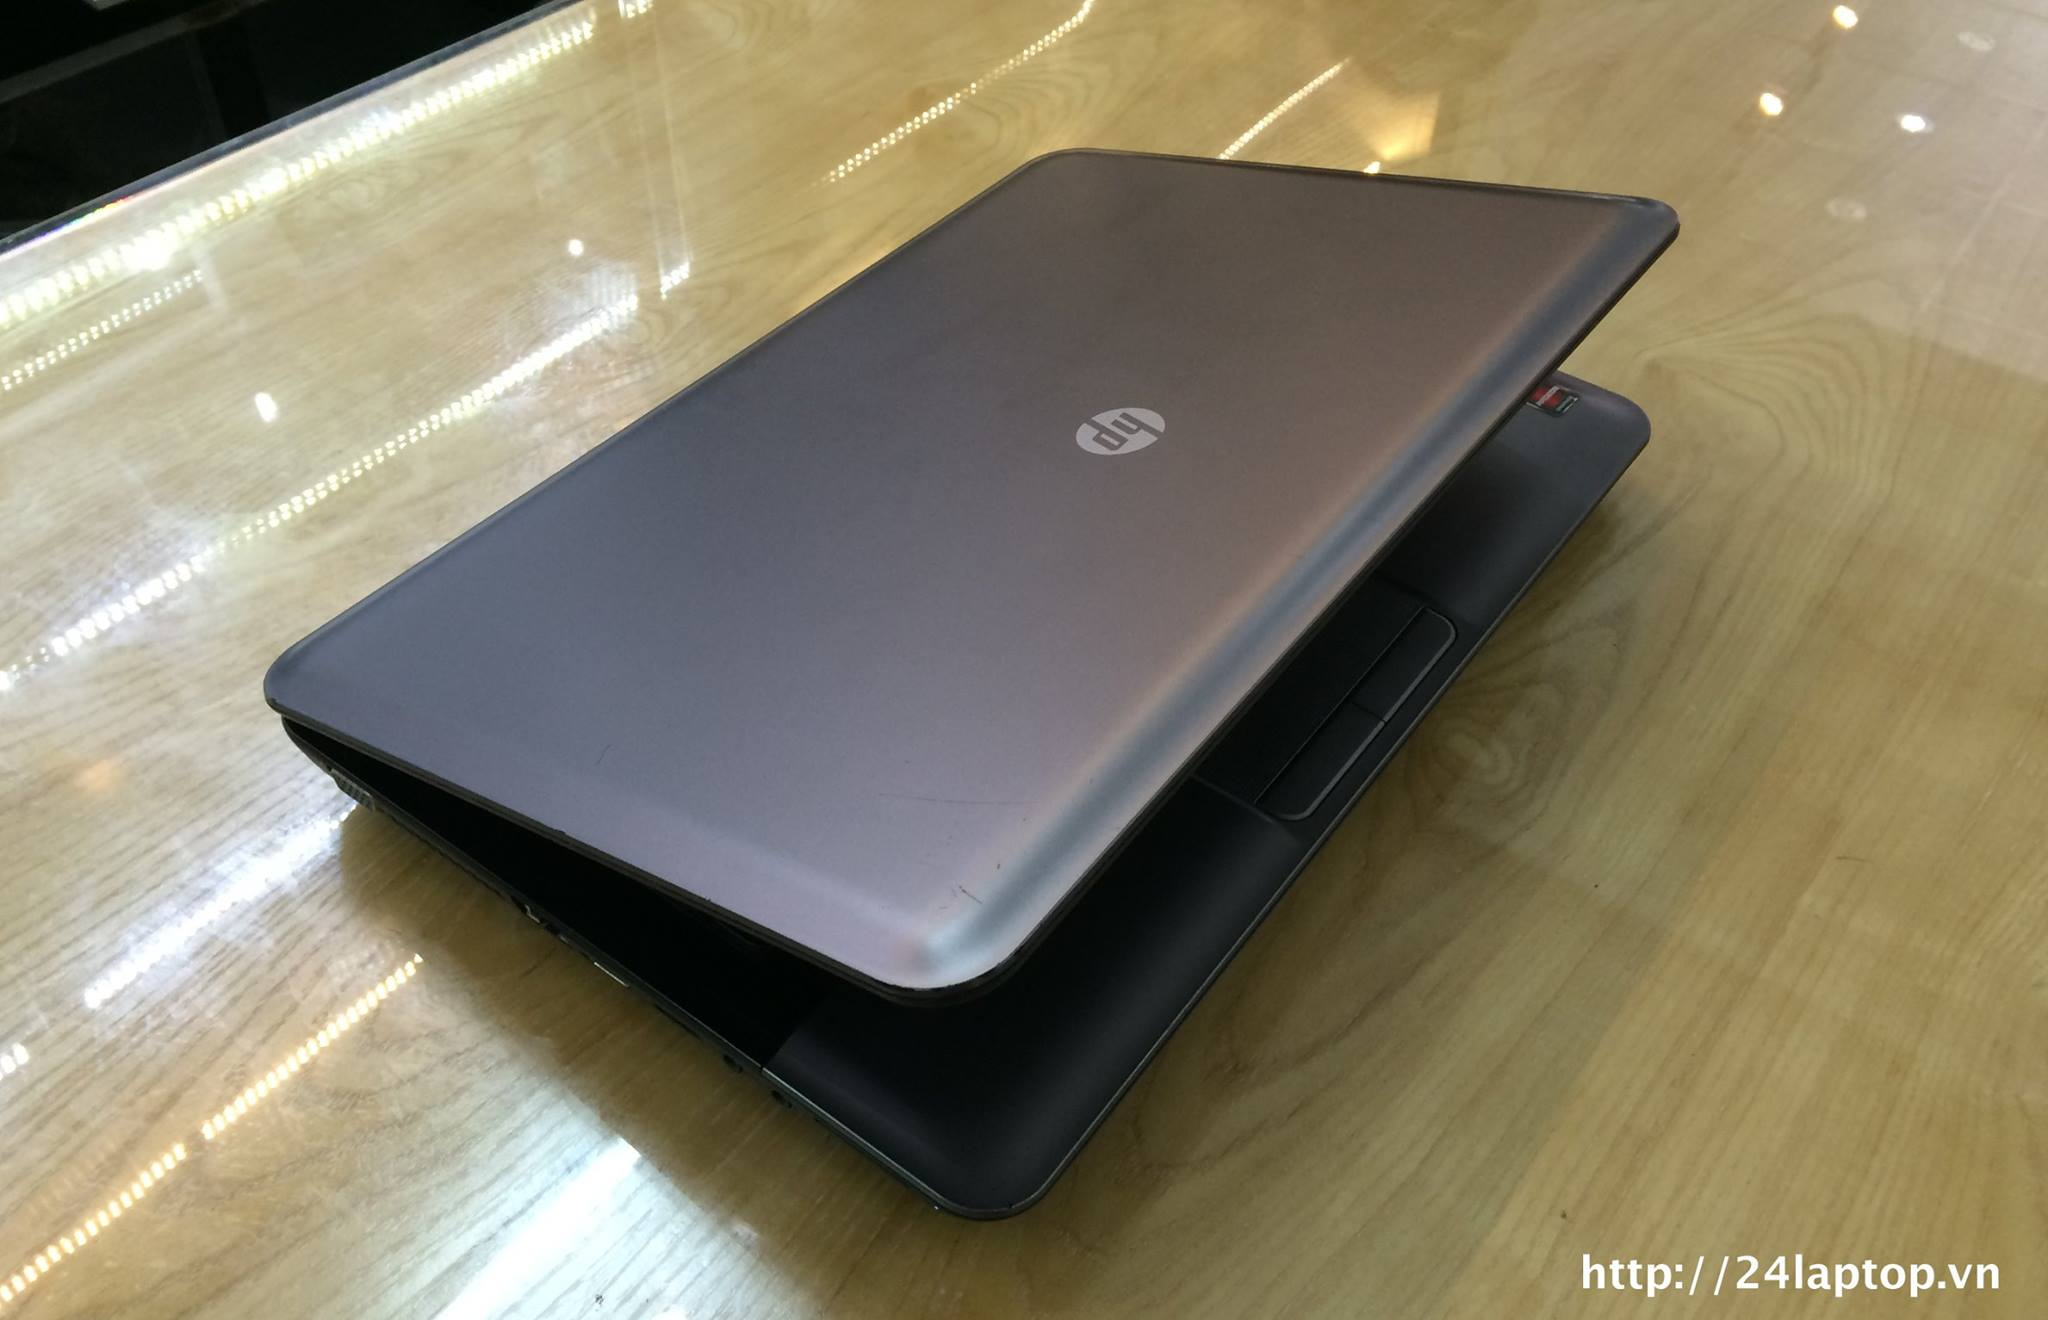 Laptop HP 450 C5Q25PA.jpg